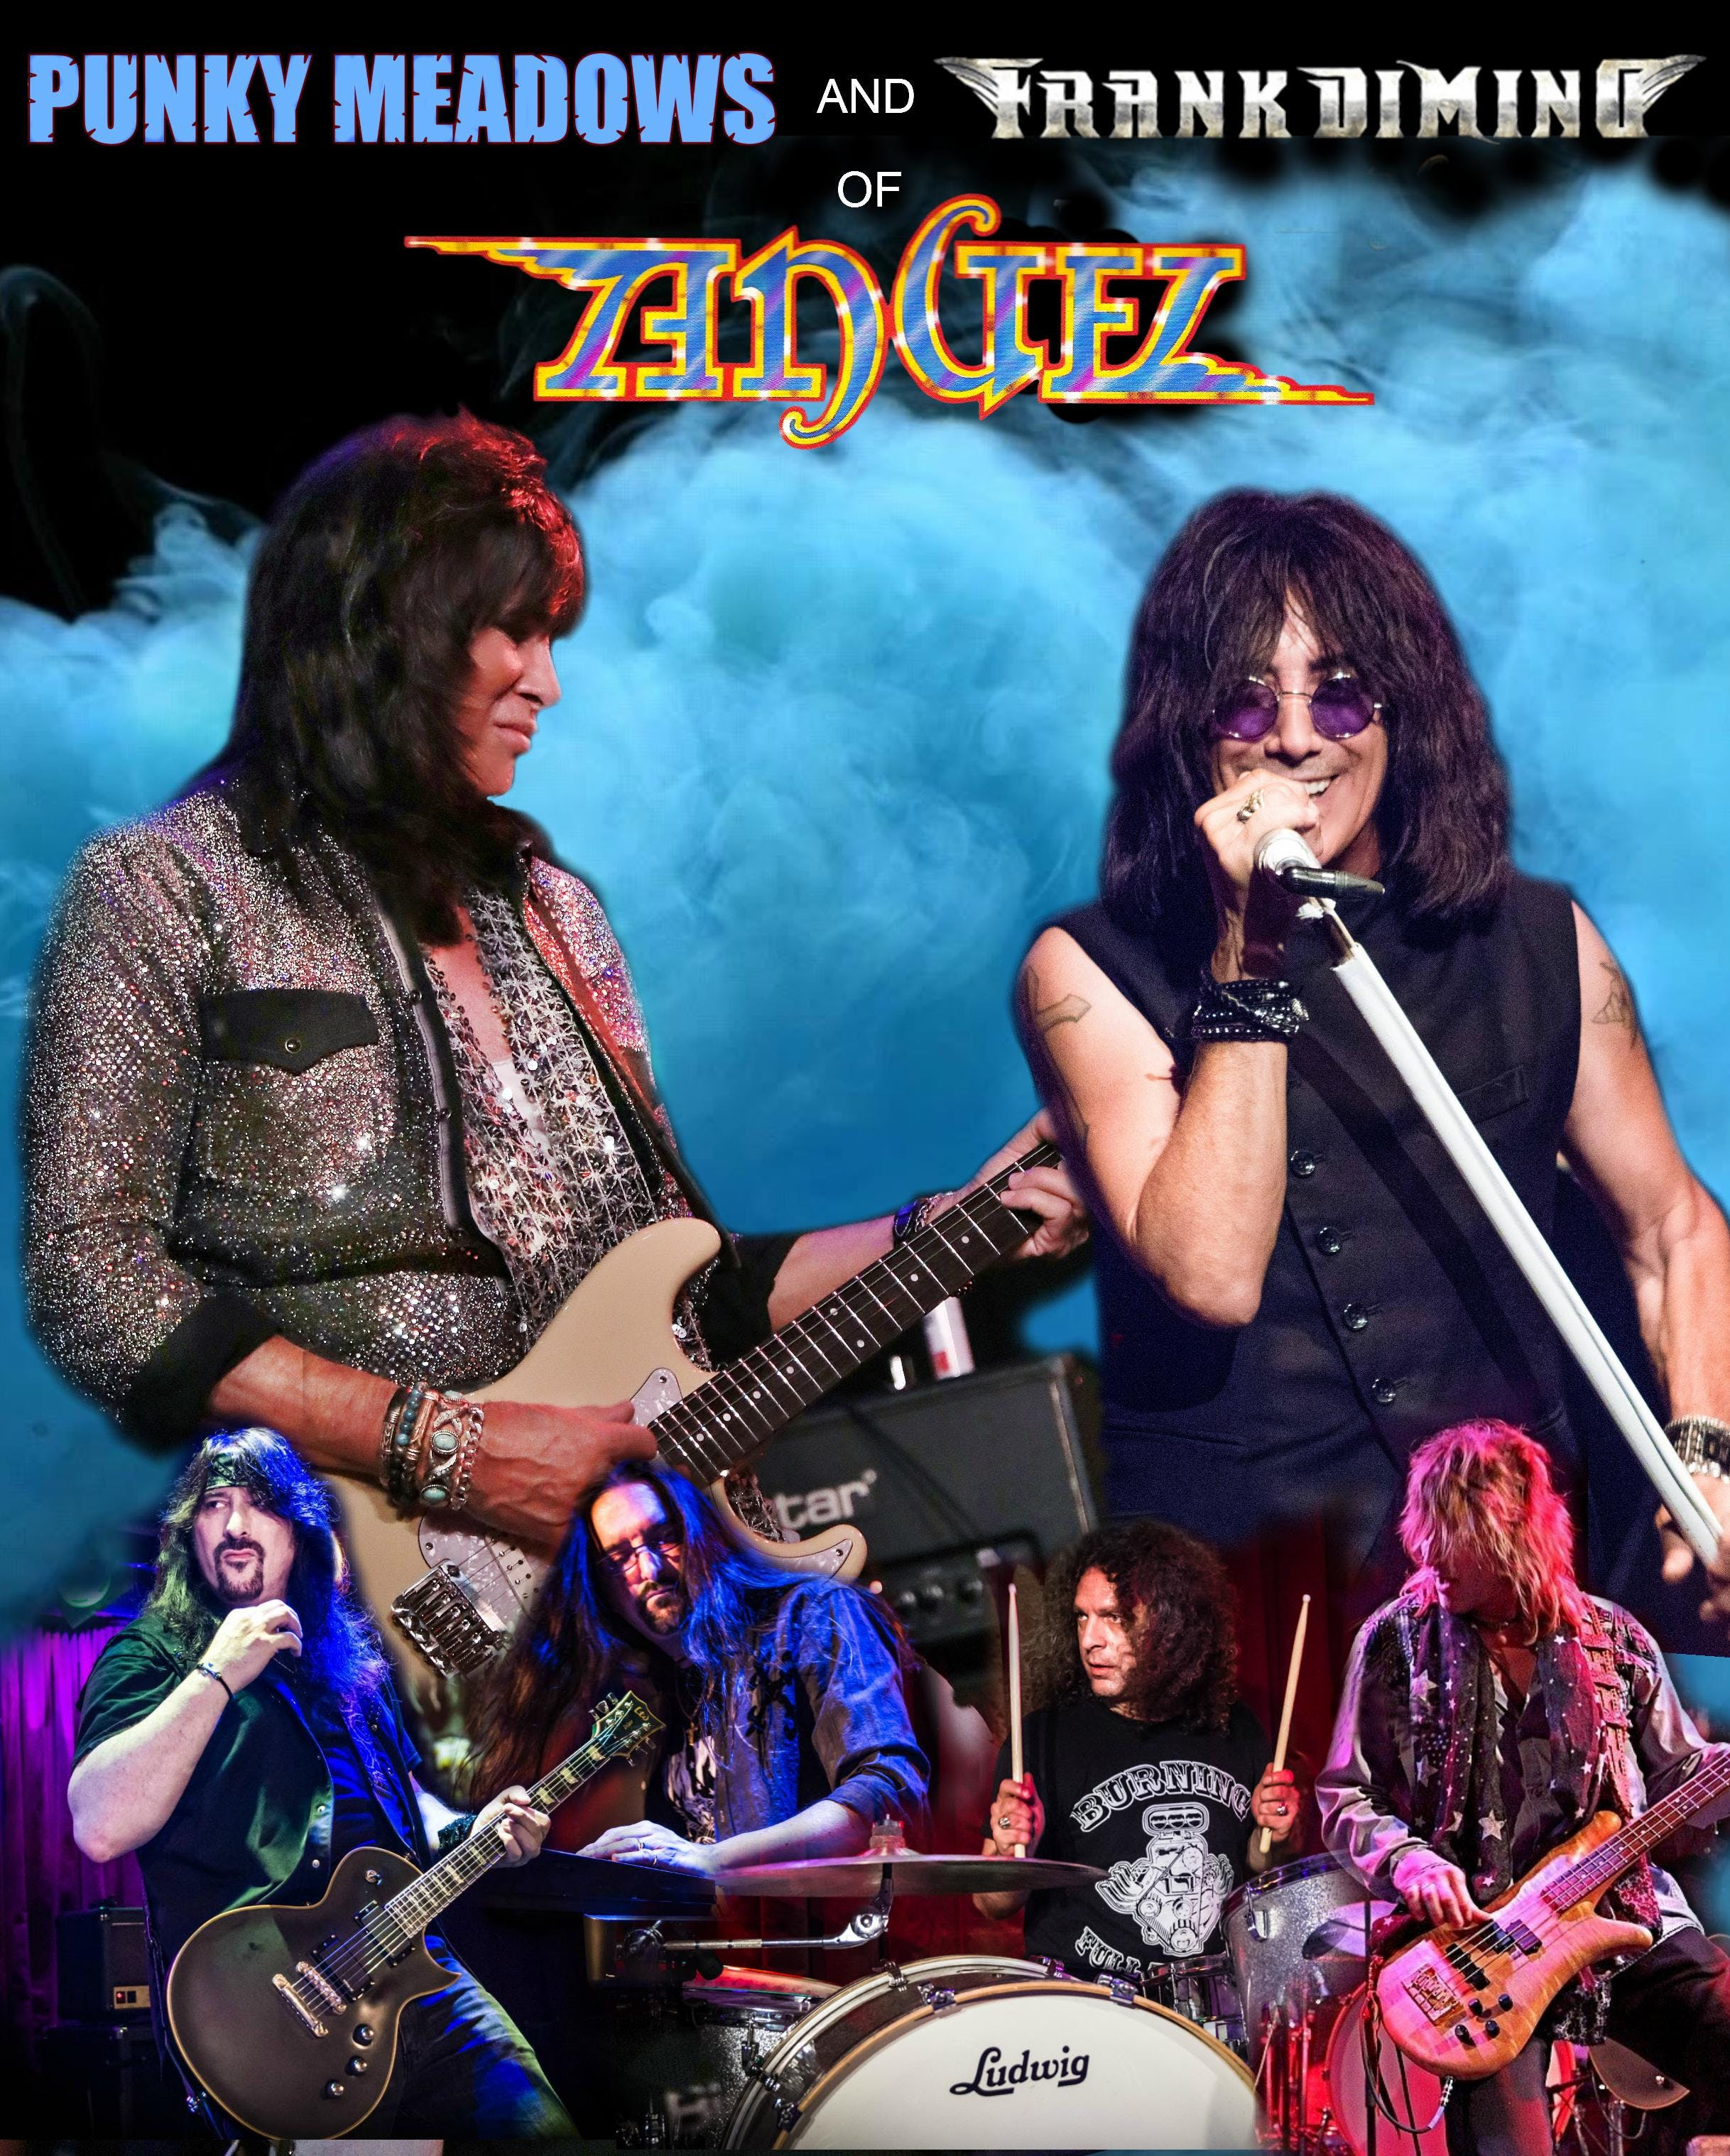 Vampd Punky Meadows And Frank Dimino From Angel Meet And Greet At